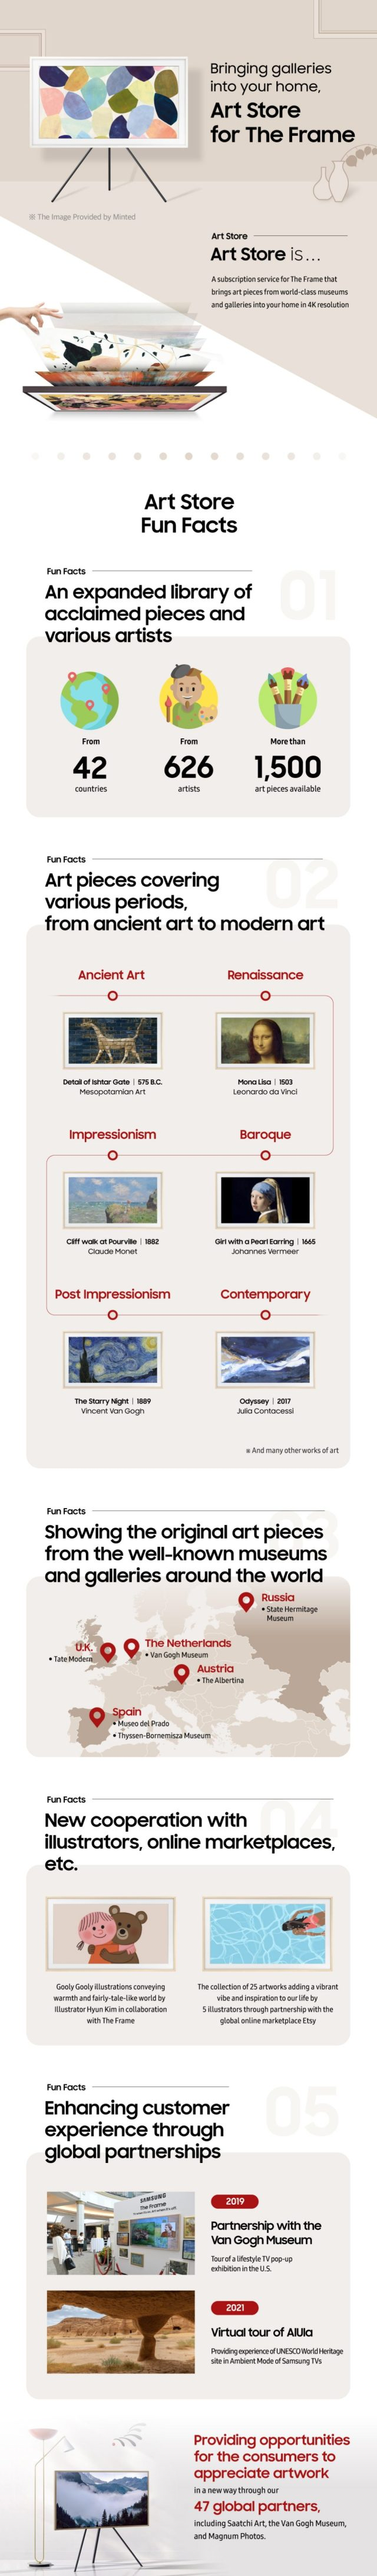 Samsung The Frame Art Store Infographic